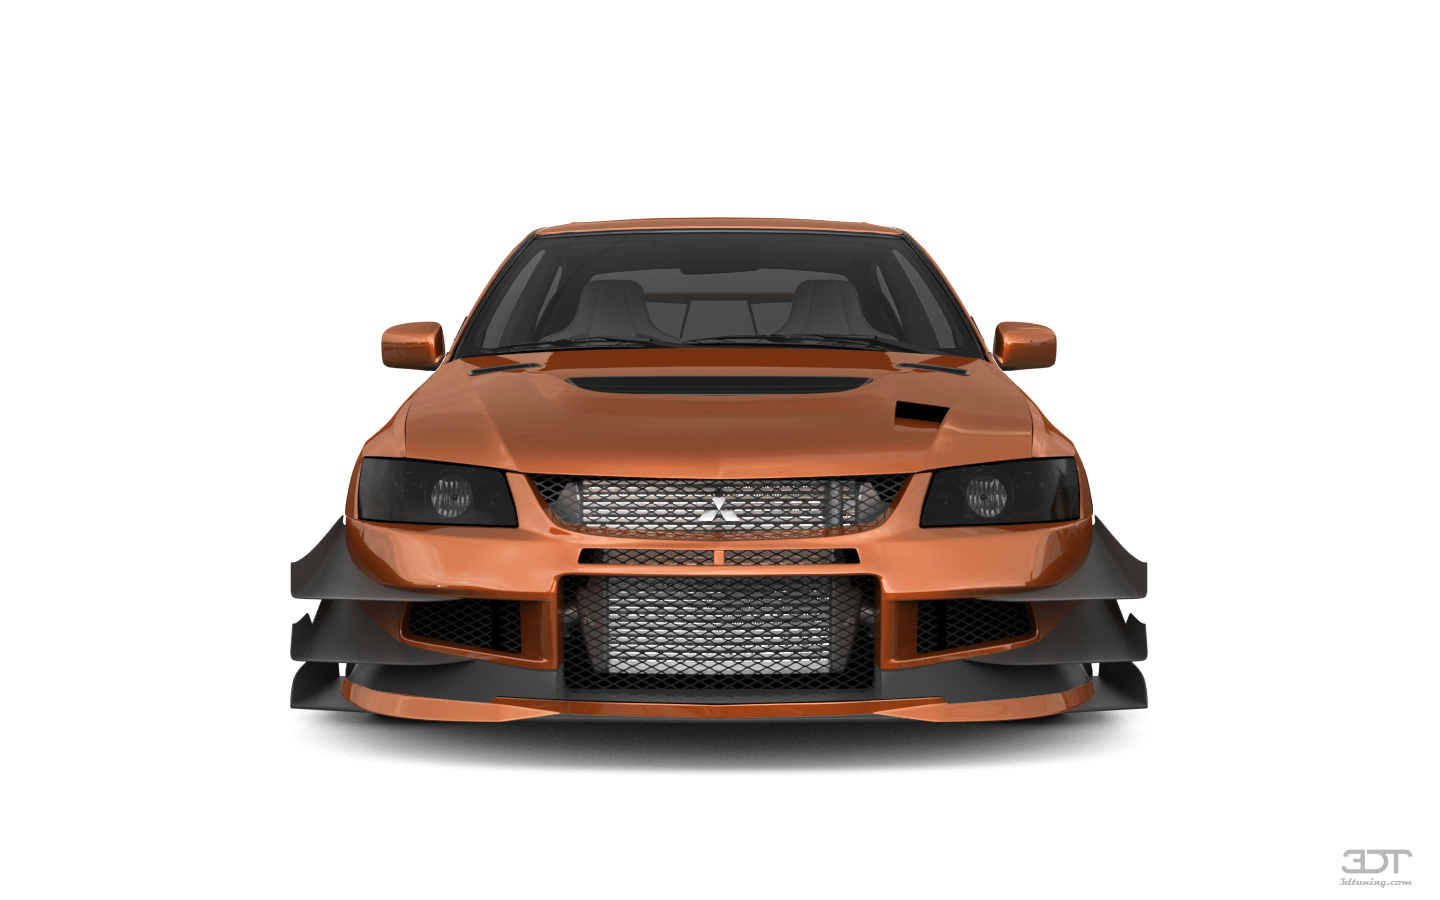 My perfect Mitsubishi Lancer Evo IX